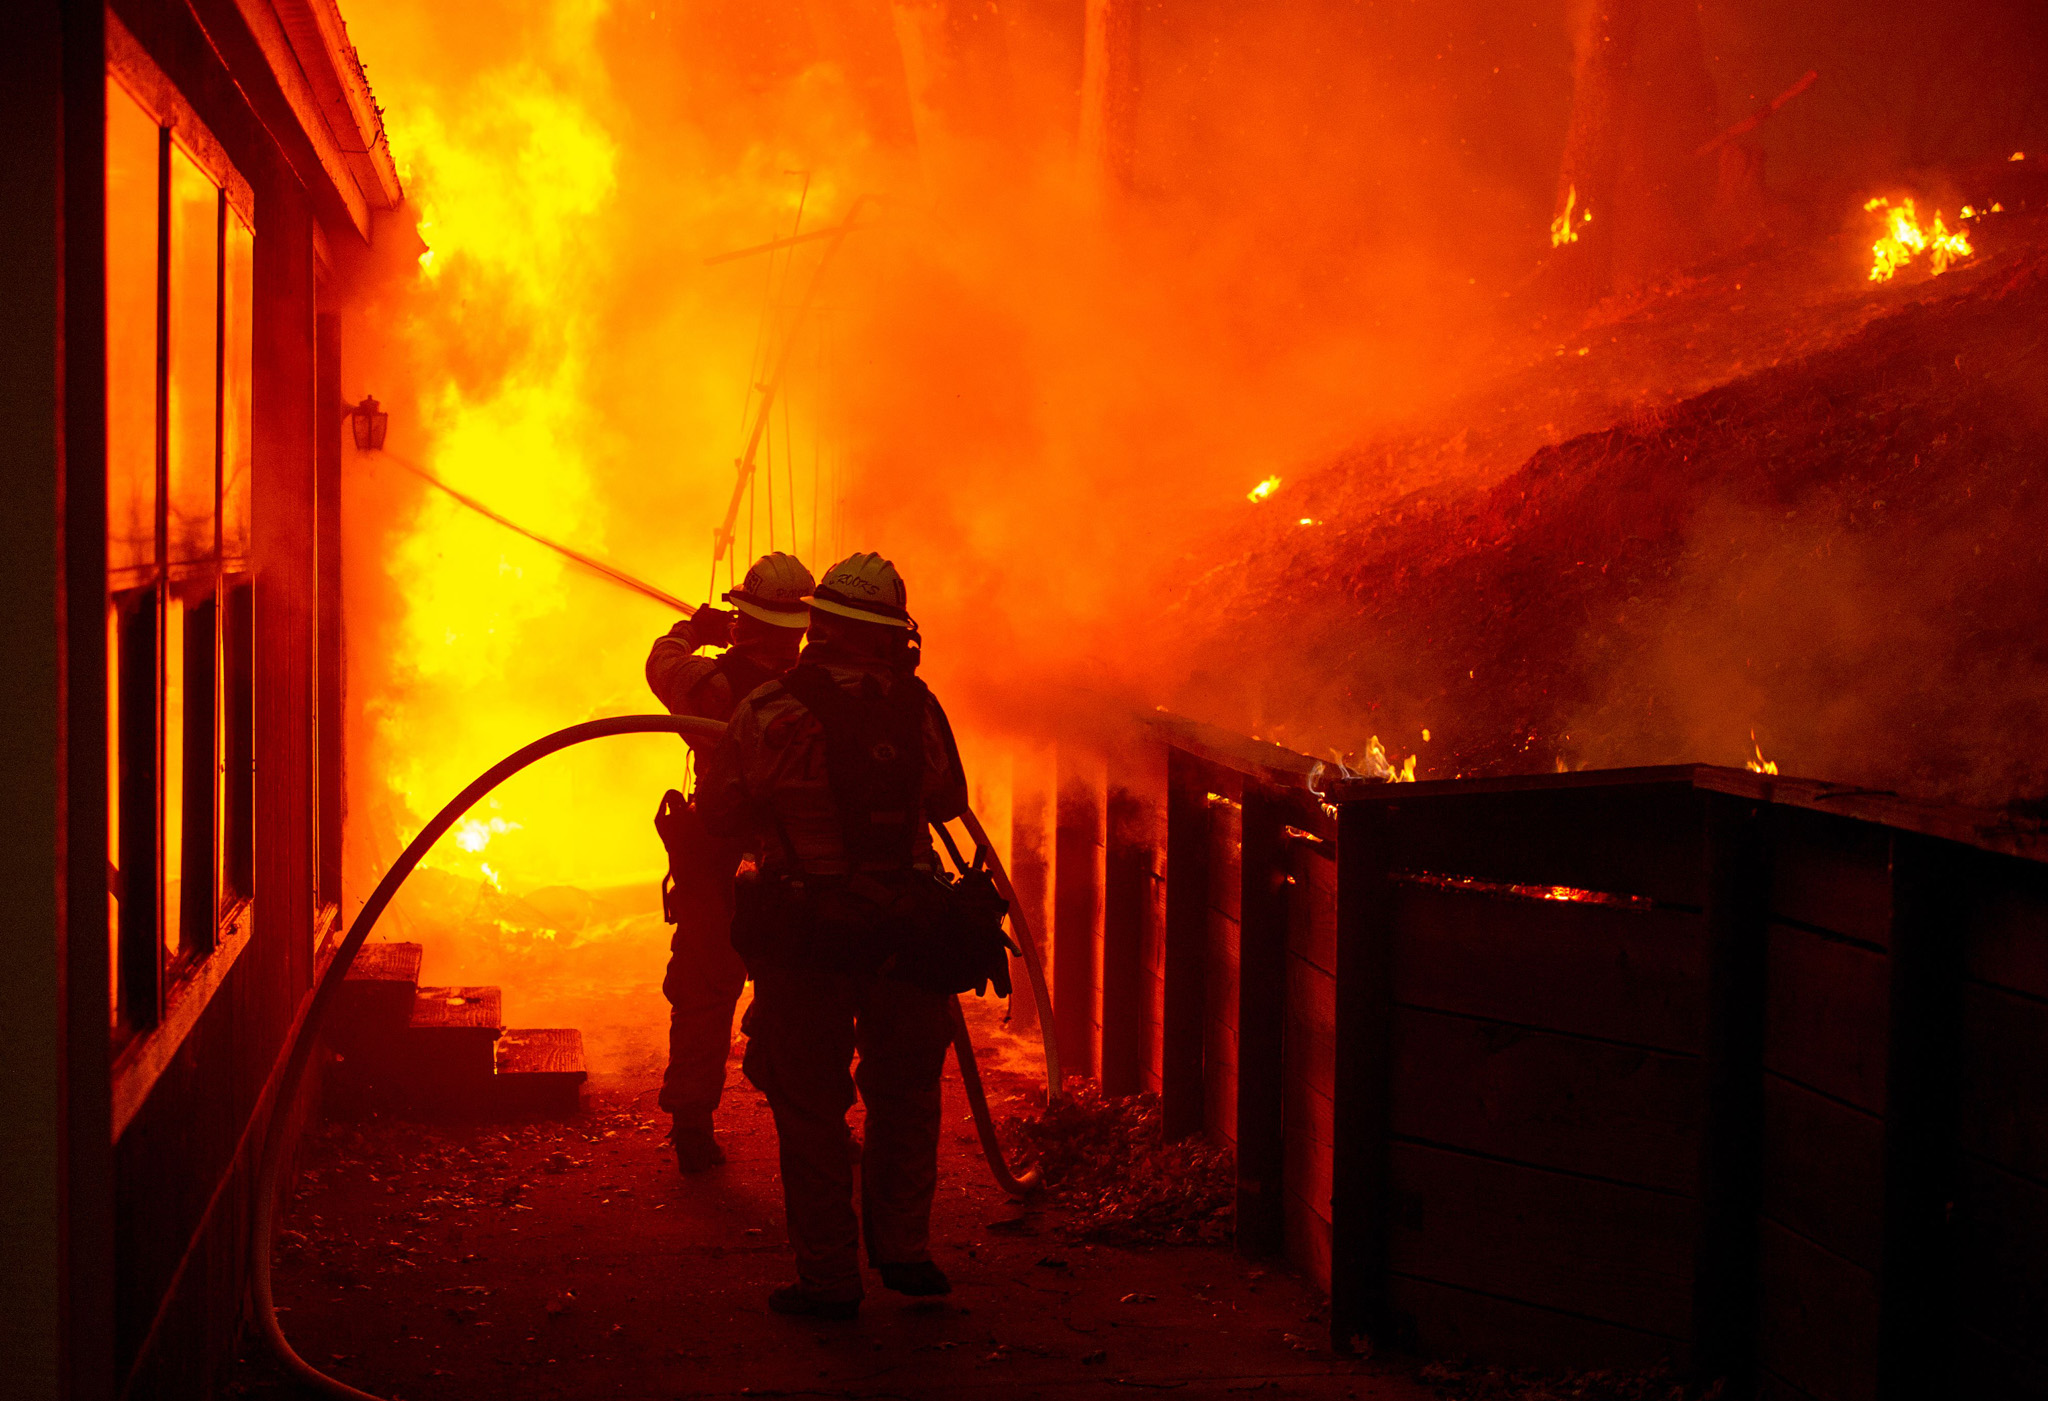 A house is engulfed in flames as firefighters attempt to put it out during the Valley fire in Seigler Springs, California.